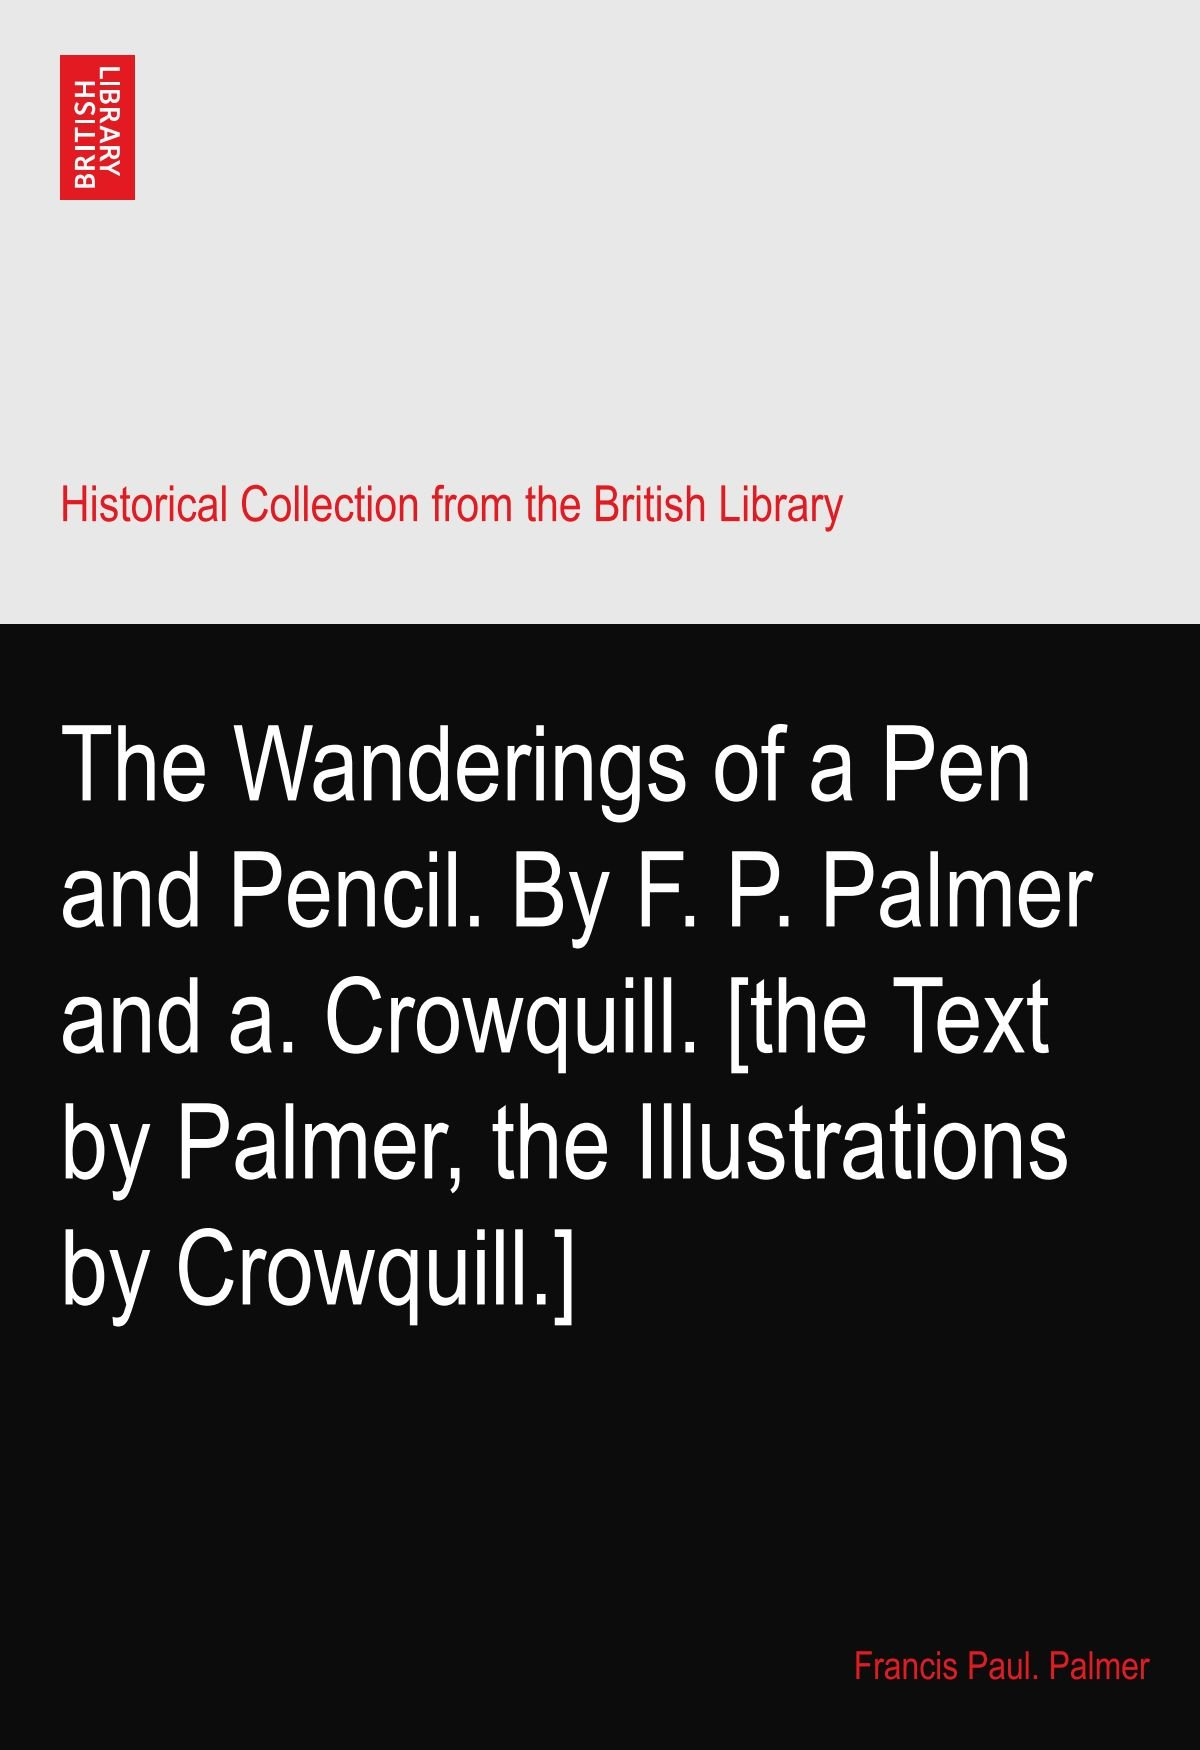 The Wanderings of a Pen and Pencil. By F. P. Palmer and a. Crowquill. [the Text by Palmer, the Illustrations by Crowquill.] pdf epub